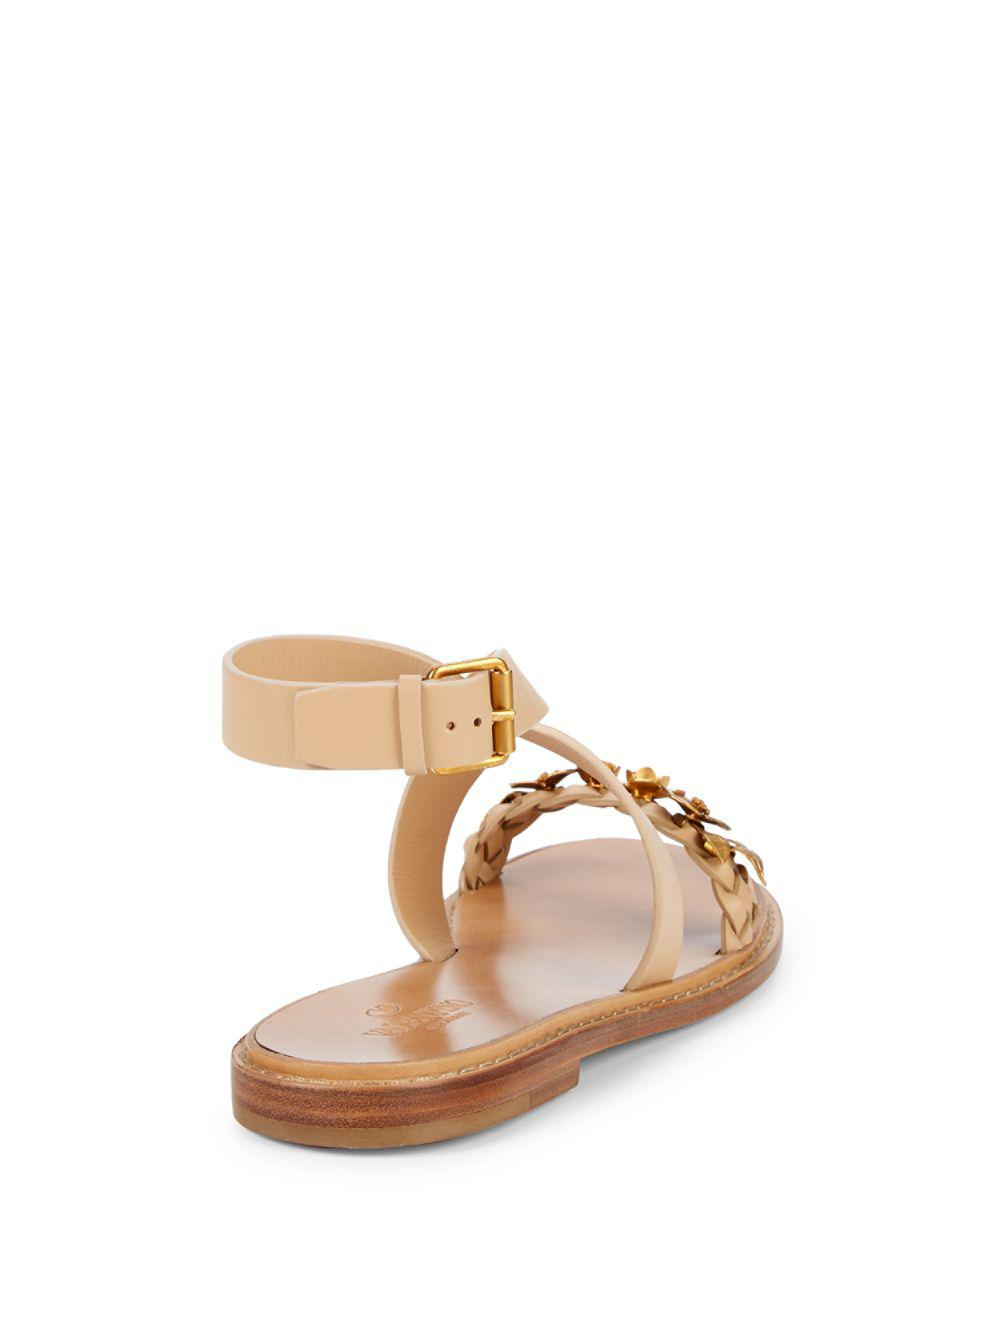 3eb1352549fa Lyst - Valentino Floral Leather Ankle-strap Sandals in Brown